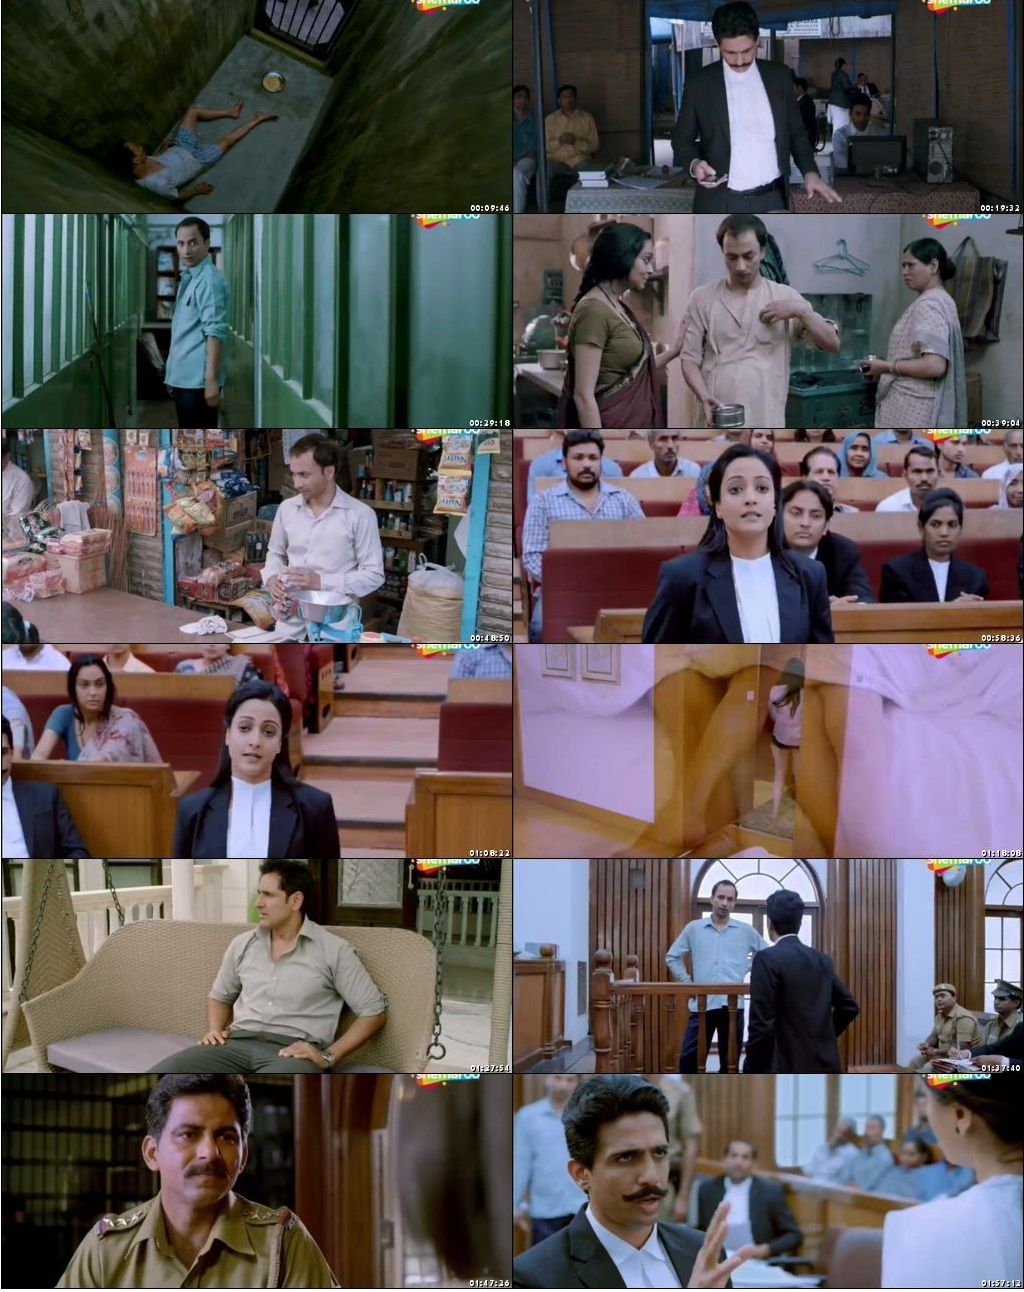 Watch Online Kuldip Patwal: I Didn't Do It! 2017 100MB Full Movie Free Download For Mobiles HDRip 3GP Mp4 HEVC